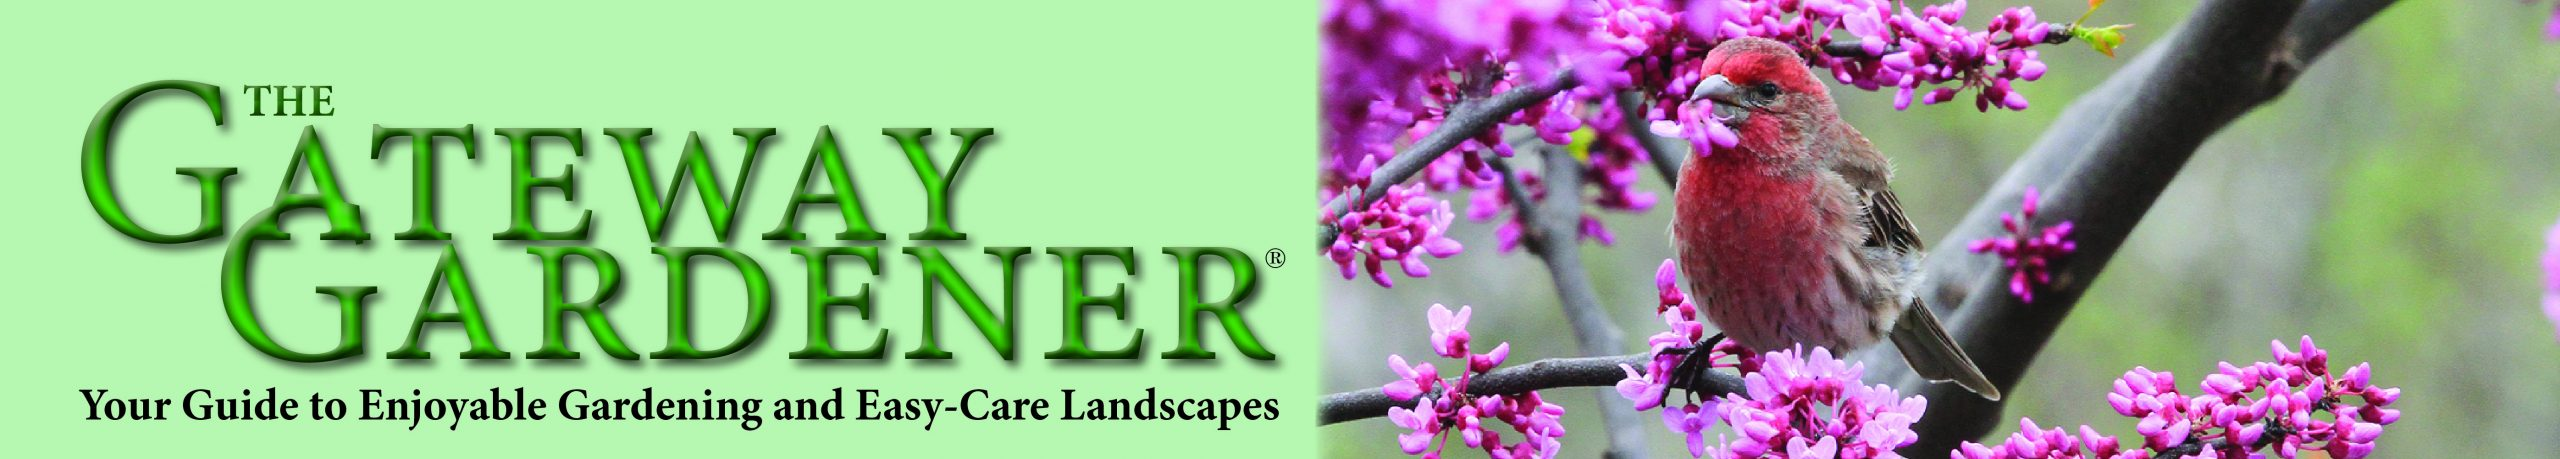 GatewayGardener.com home page header with house finch in redbud picture